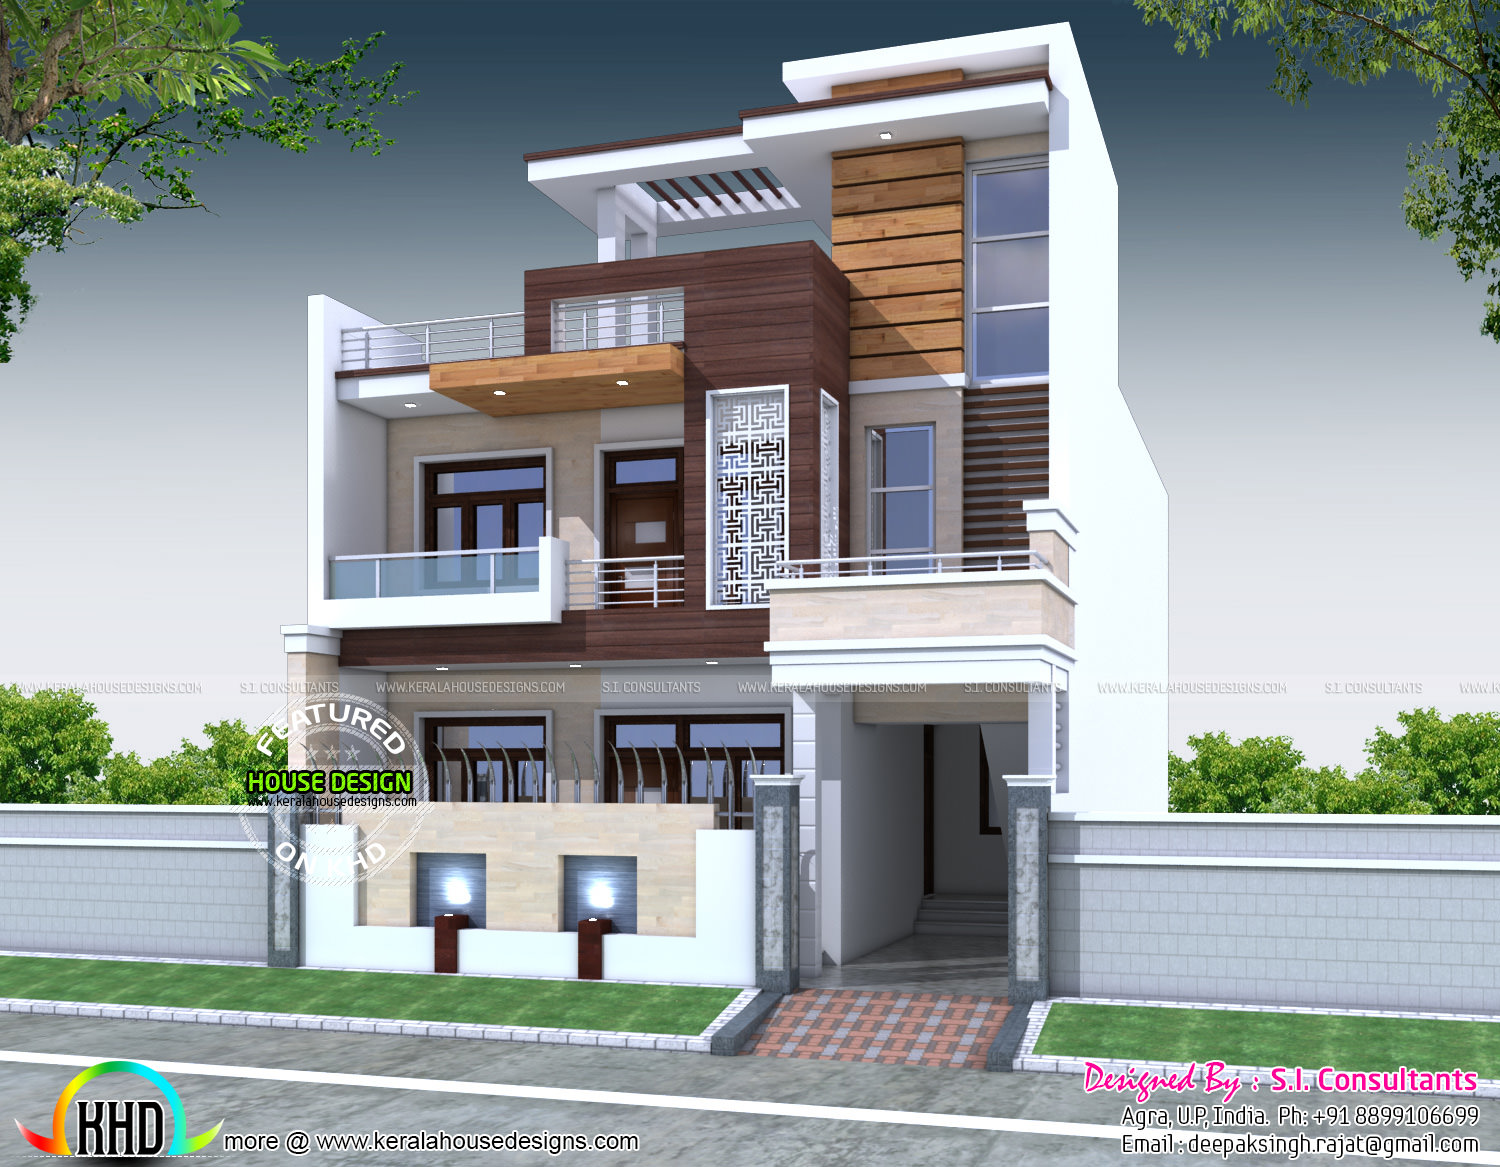 Decorative 5 bedroom house architecture kerala home for Home design 60s